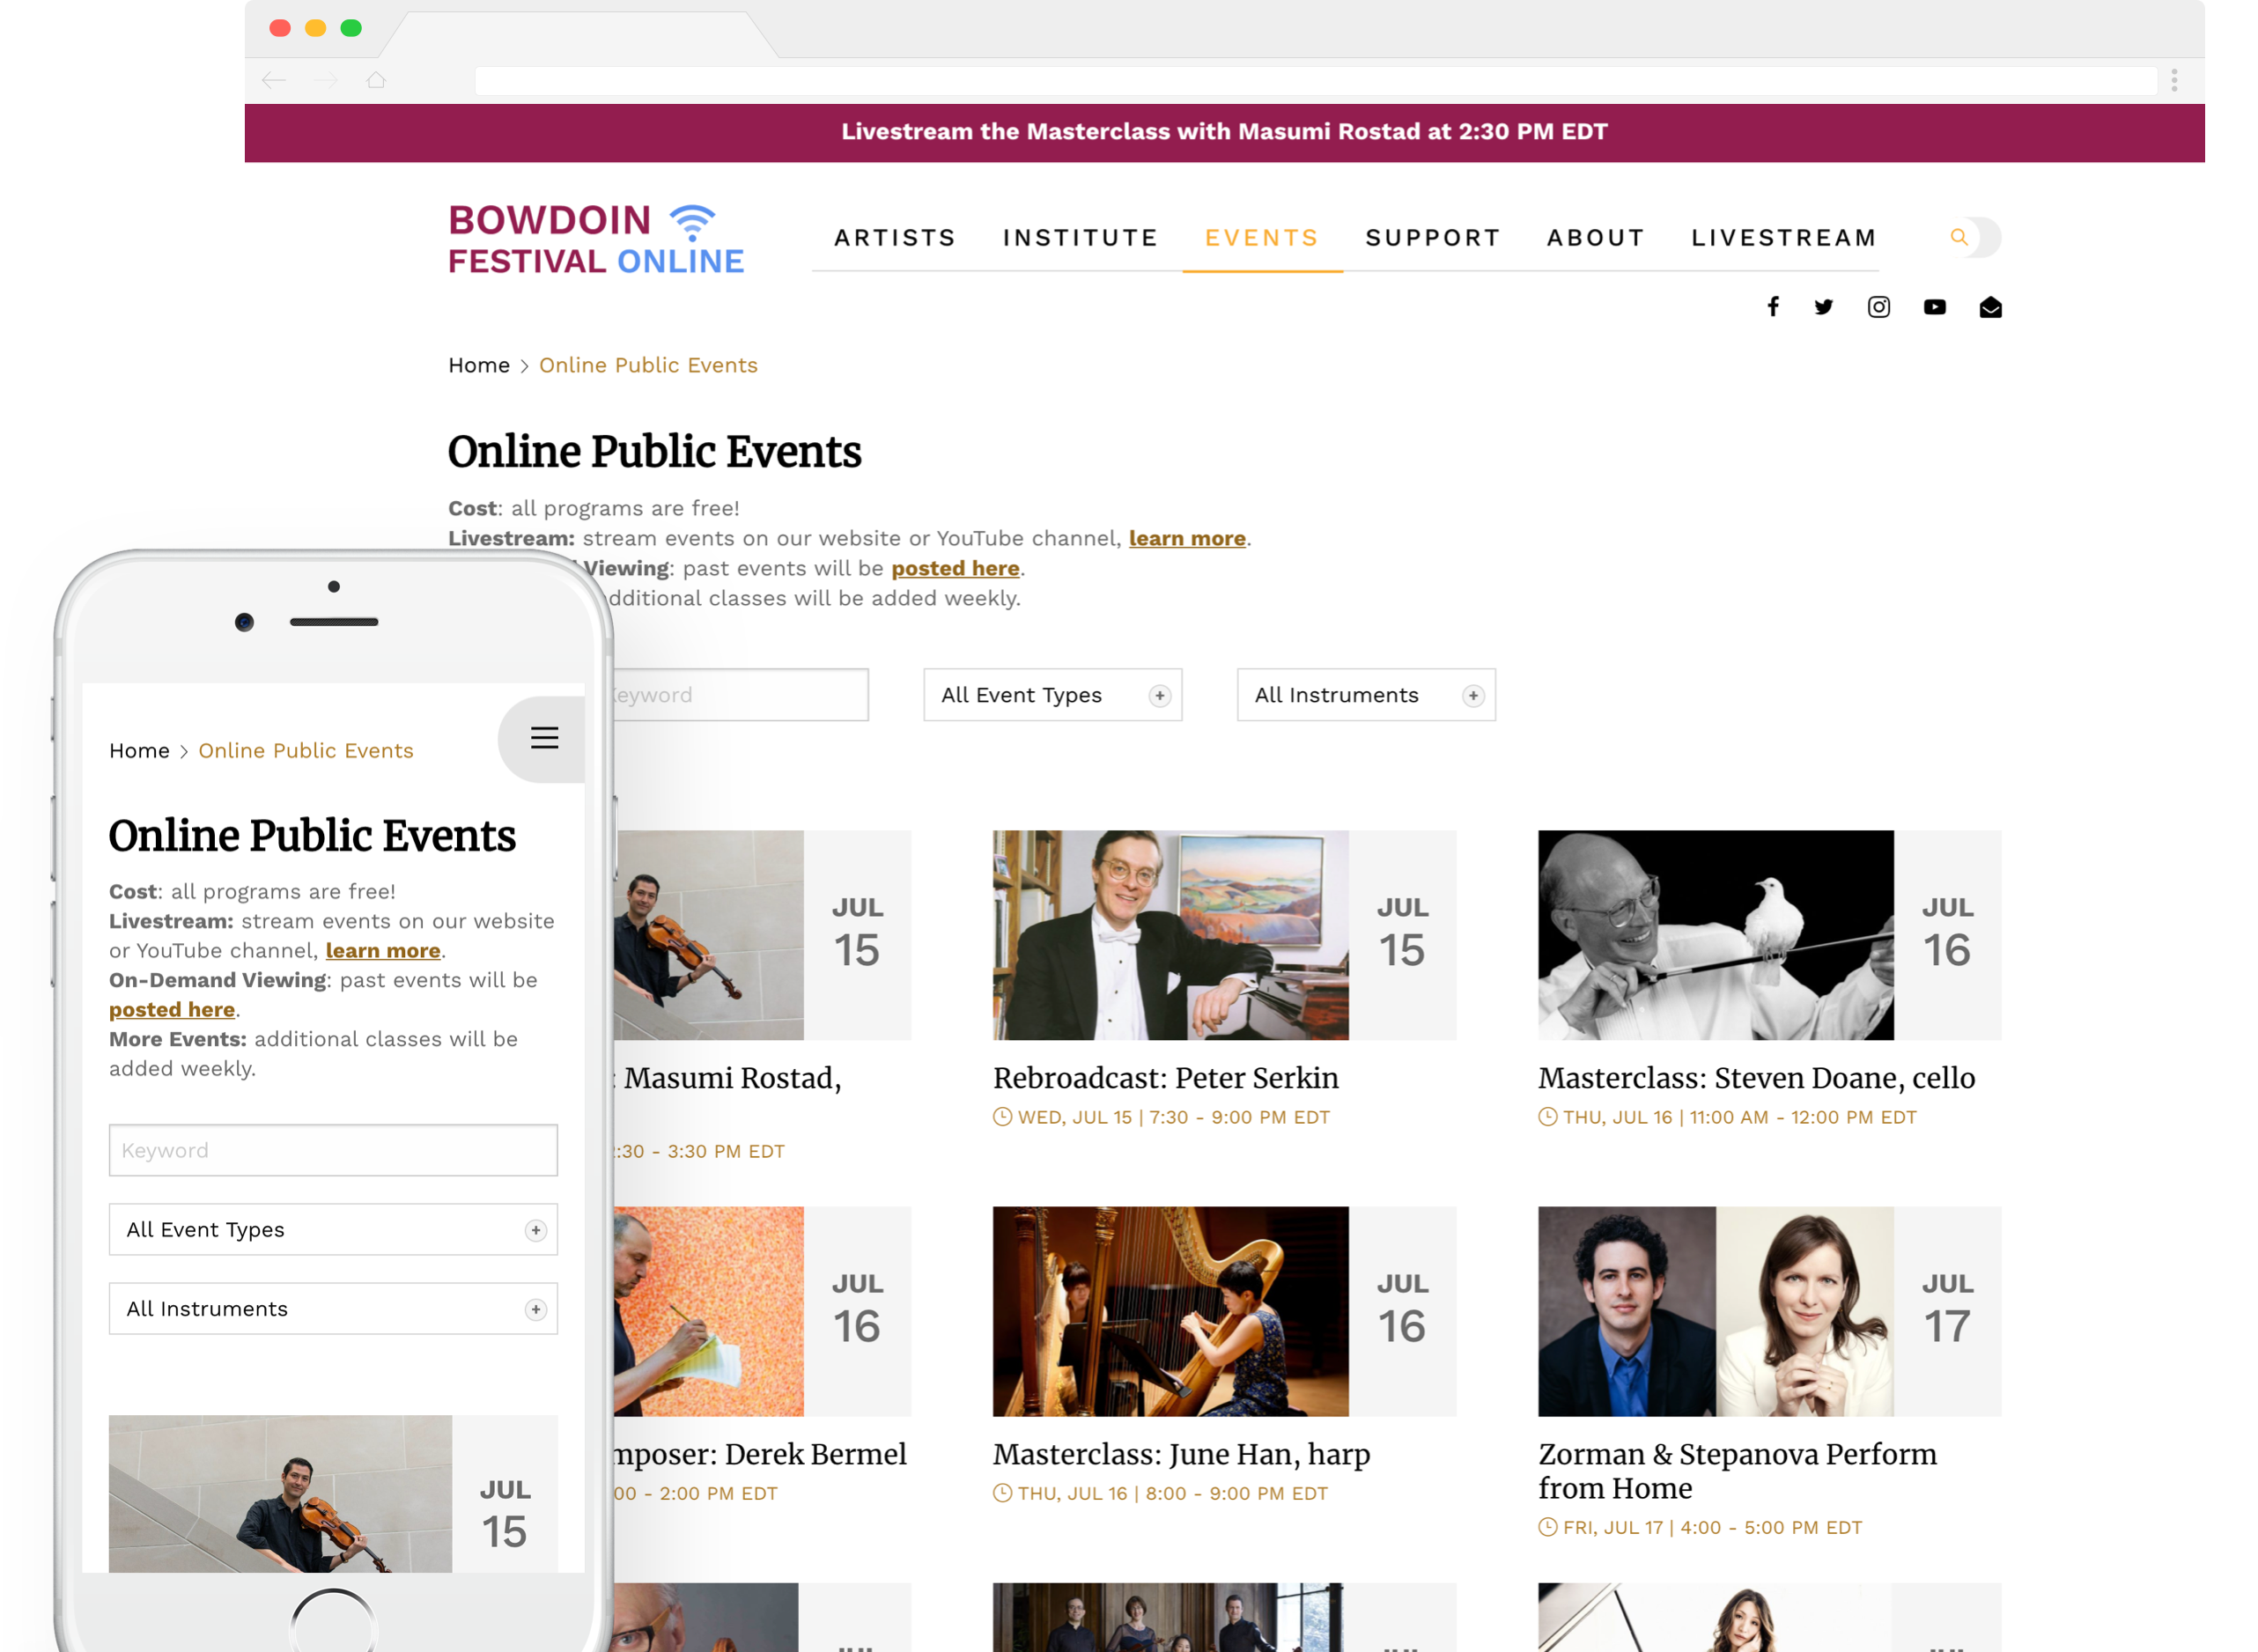 Bowdoin Festival online webpage on both desktop and mobile